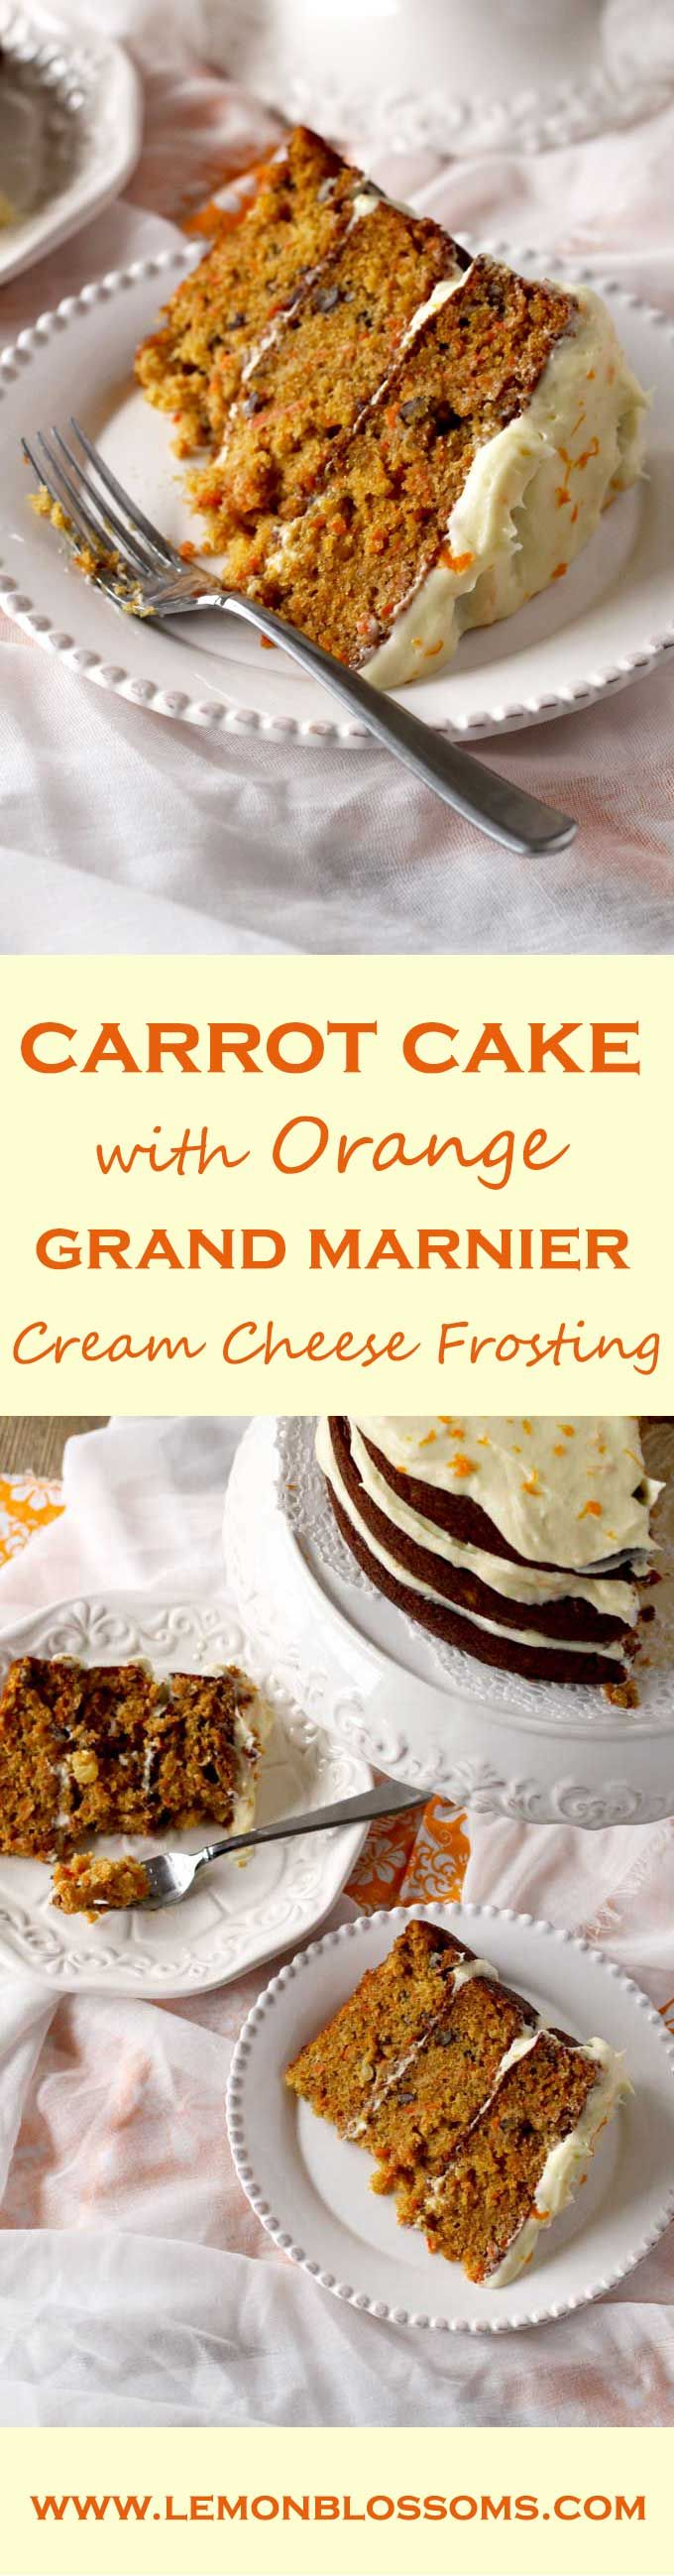 Moist and incredibly flavorful, this Carrot Cake with Orange Grand Marnier Cream Cheese Frosting is delicate and perfectly balanced. The fluffy Orange Grand Marnier Cream Cheese Frosting is amazing and brings this cake to another level of deliciousness! via @https://www.pinterest.com/lmnblossoms/